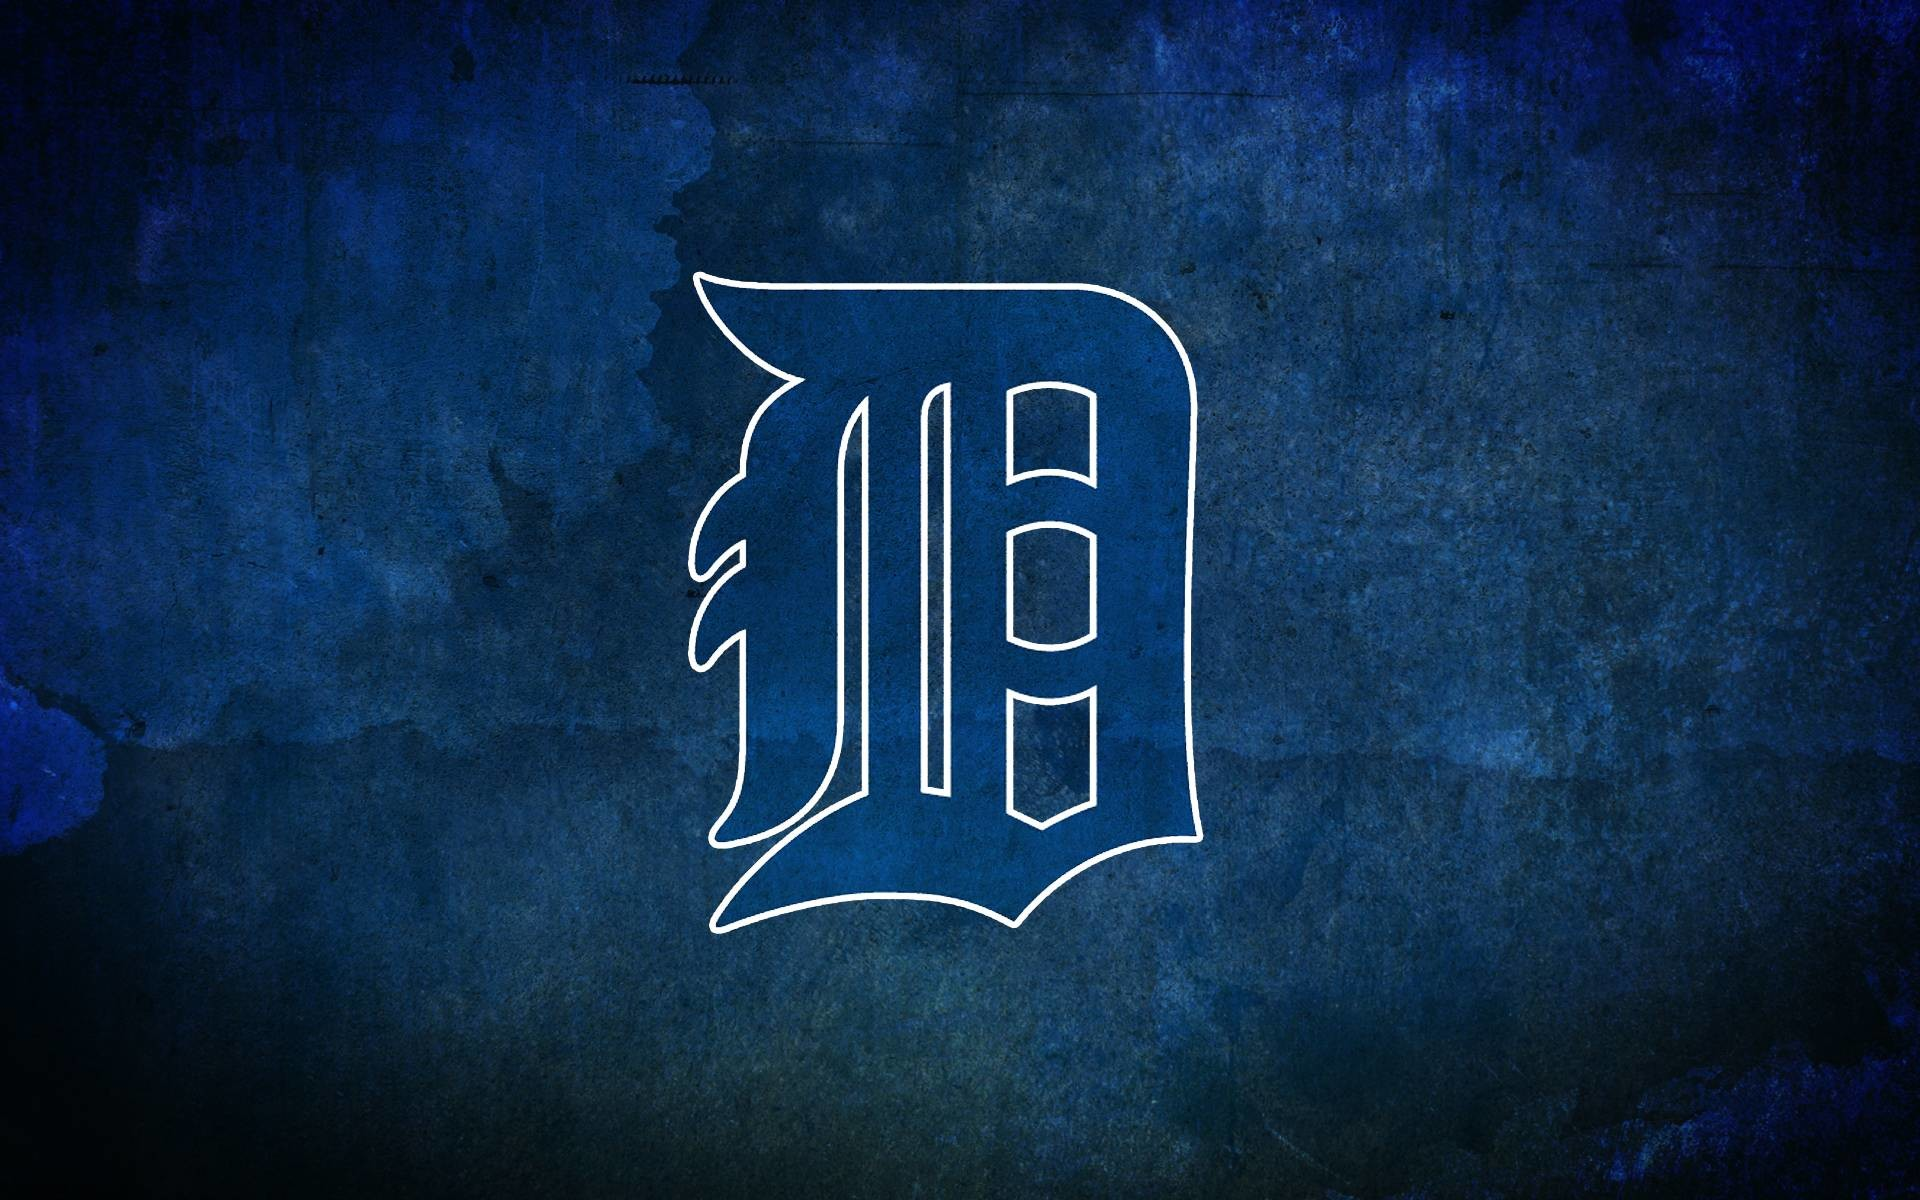 Detroit Tigers Cool Wallpapers 24857 Images   wallgraf.